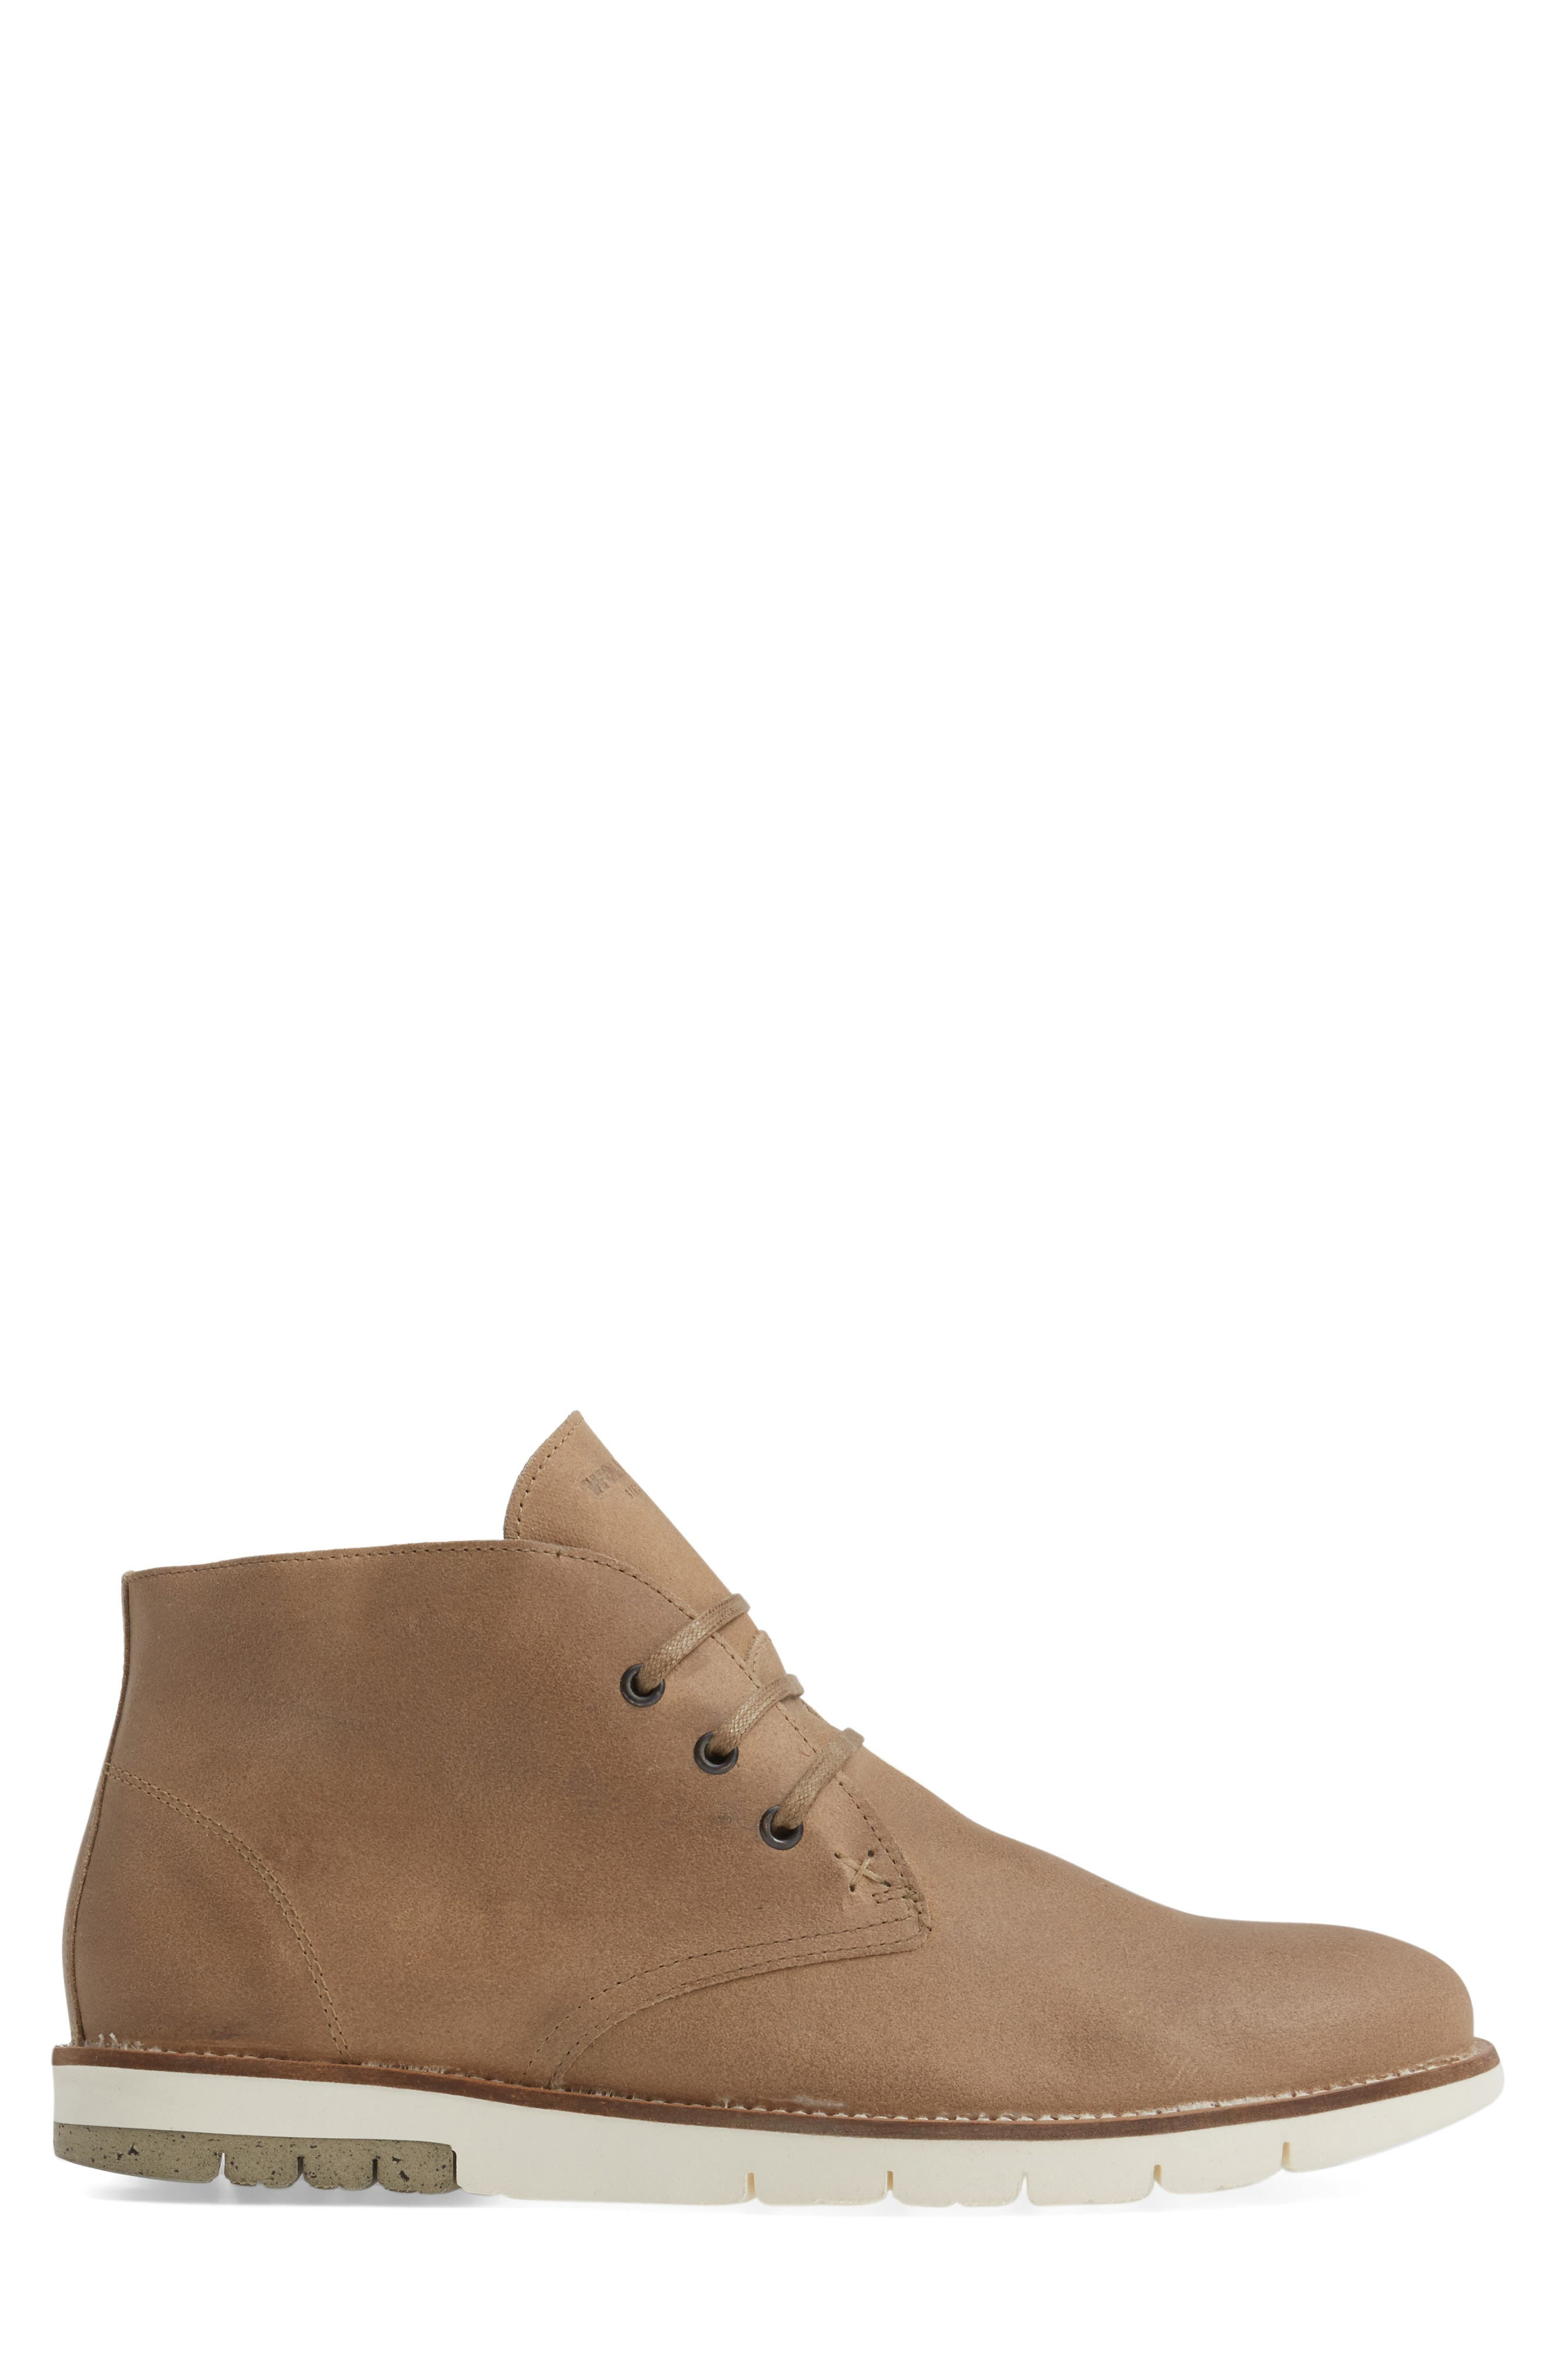 Gibson Chukka Boot,                             Alternate thumbnail 3, color,                             200